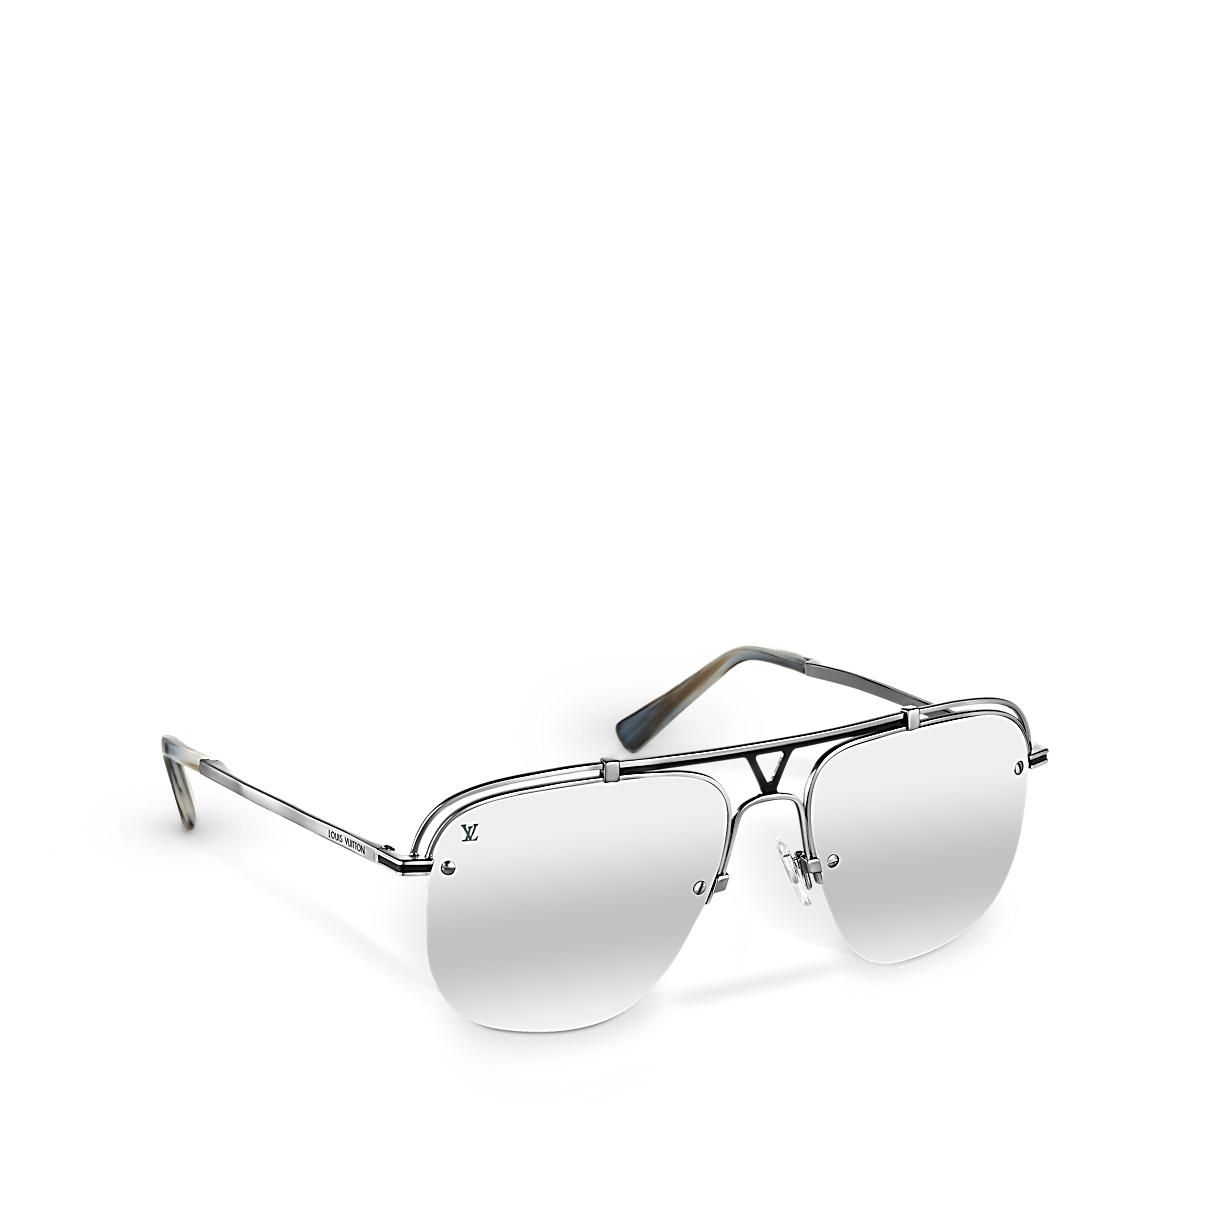 3d9a7510aaeb ACCESSORIES SUNGLASSES LV Boarding | Louis Vuitton ® | Accessories ...